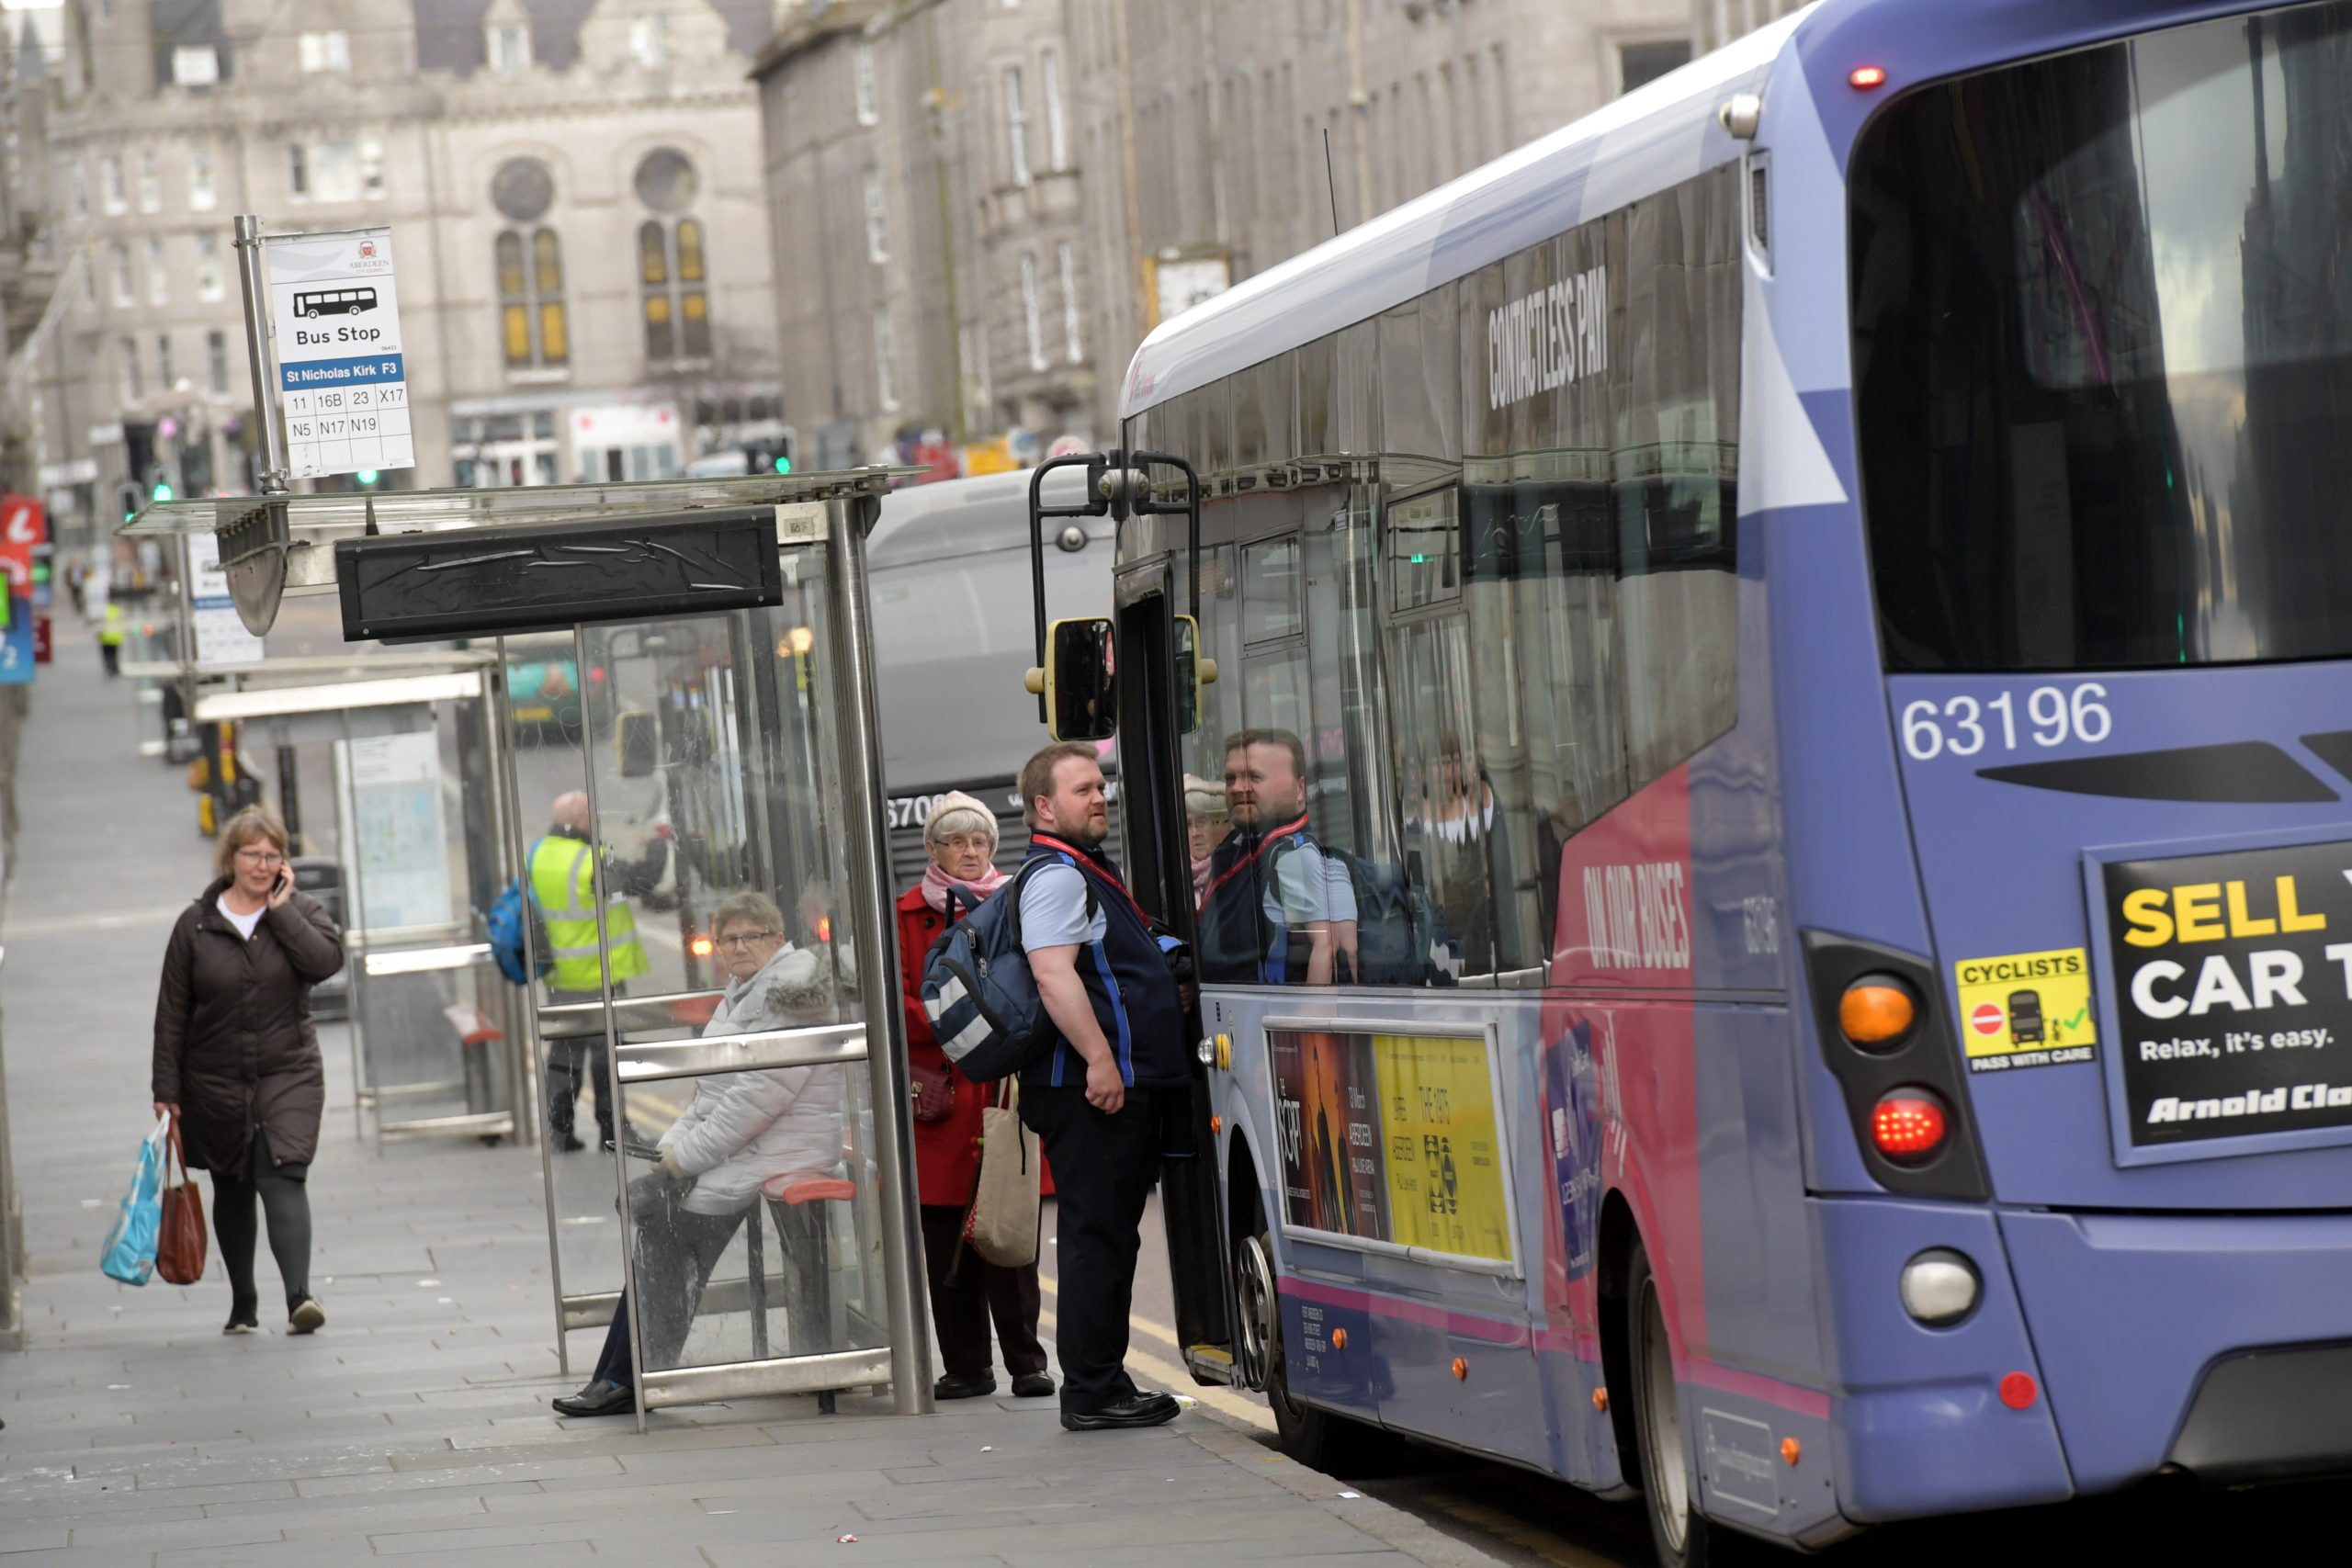 A bus picks up passengers on Union Street. Picture by Kath Flannery